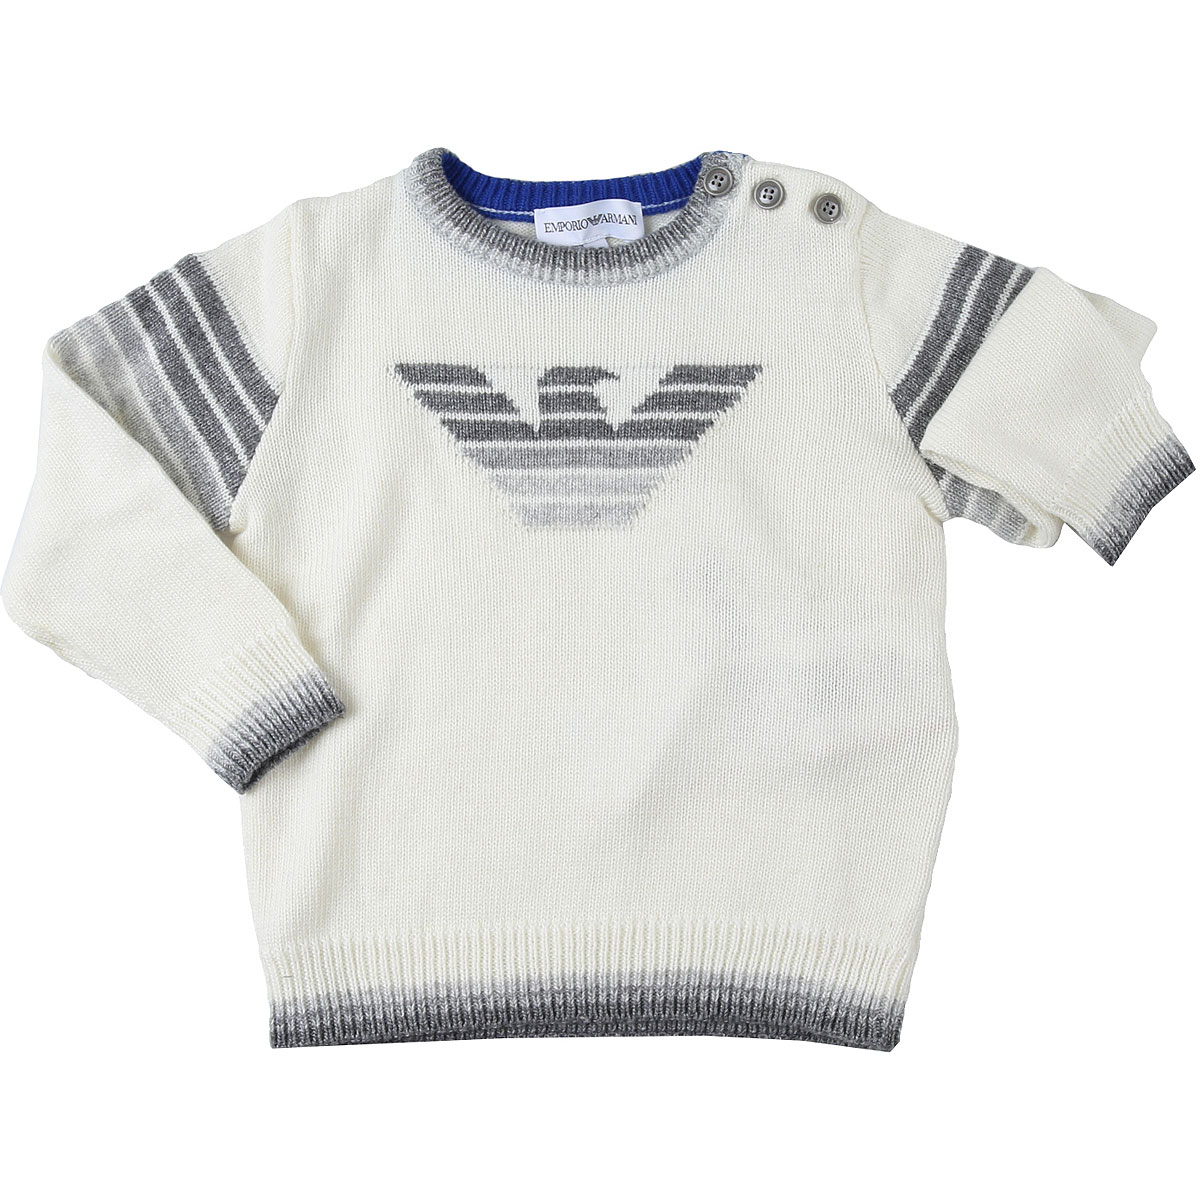 Emporio Armani Baby Sweaters for Boys On Sale, Wool White, Viscose, 2019, 12 M 18M 2Y 3Y 9M